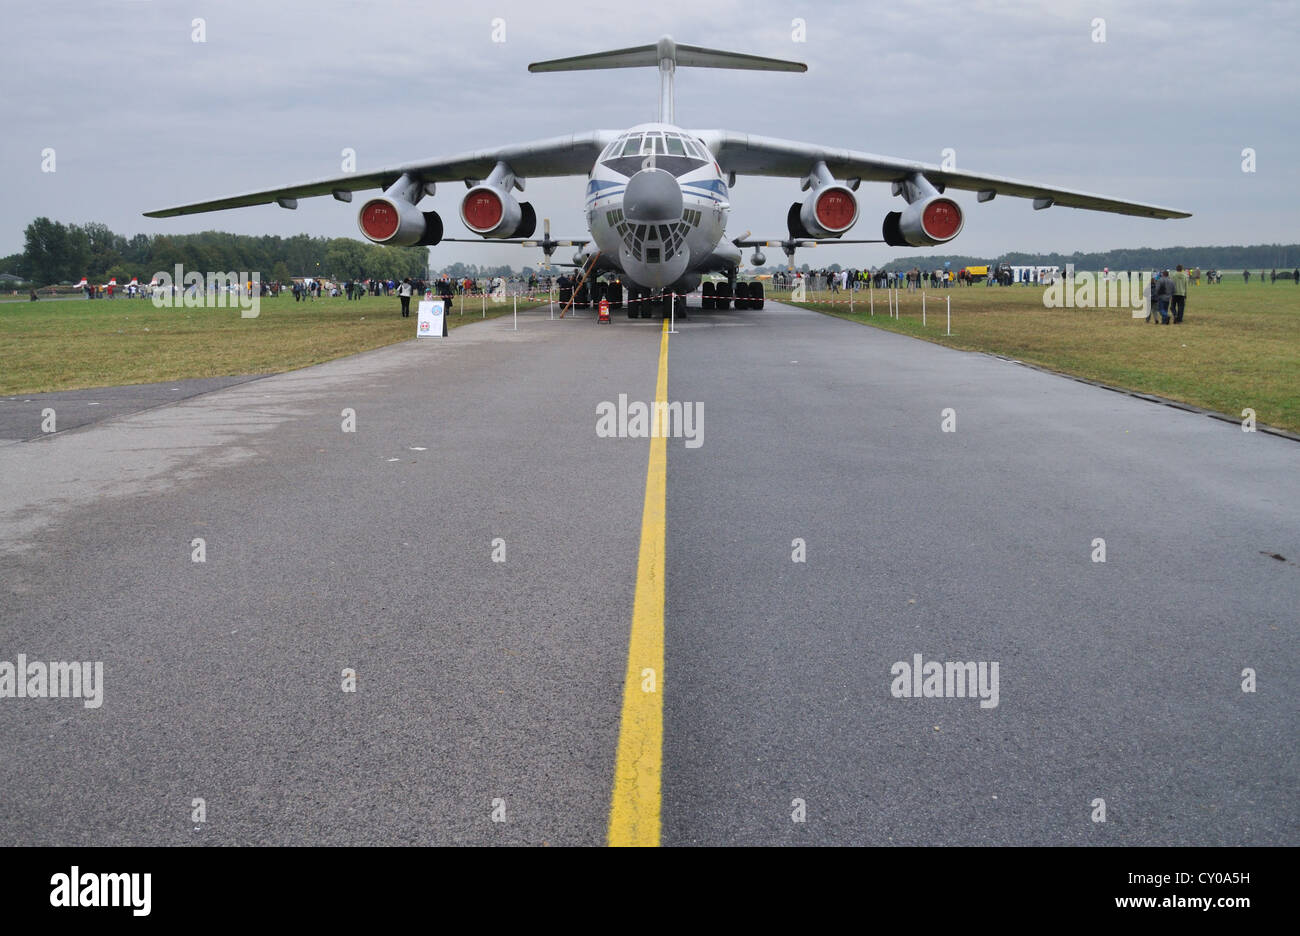 4-engined strategic airlifter Ilyushin il-76 Candid - Stock Image